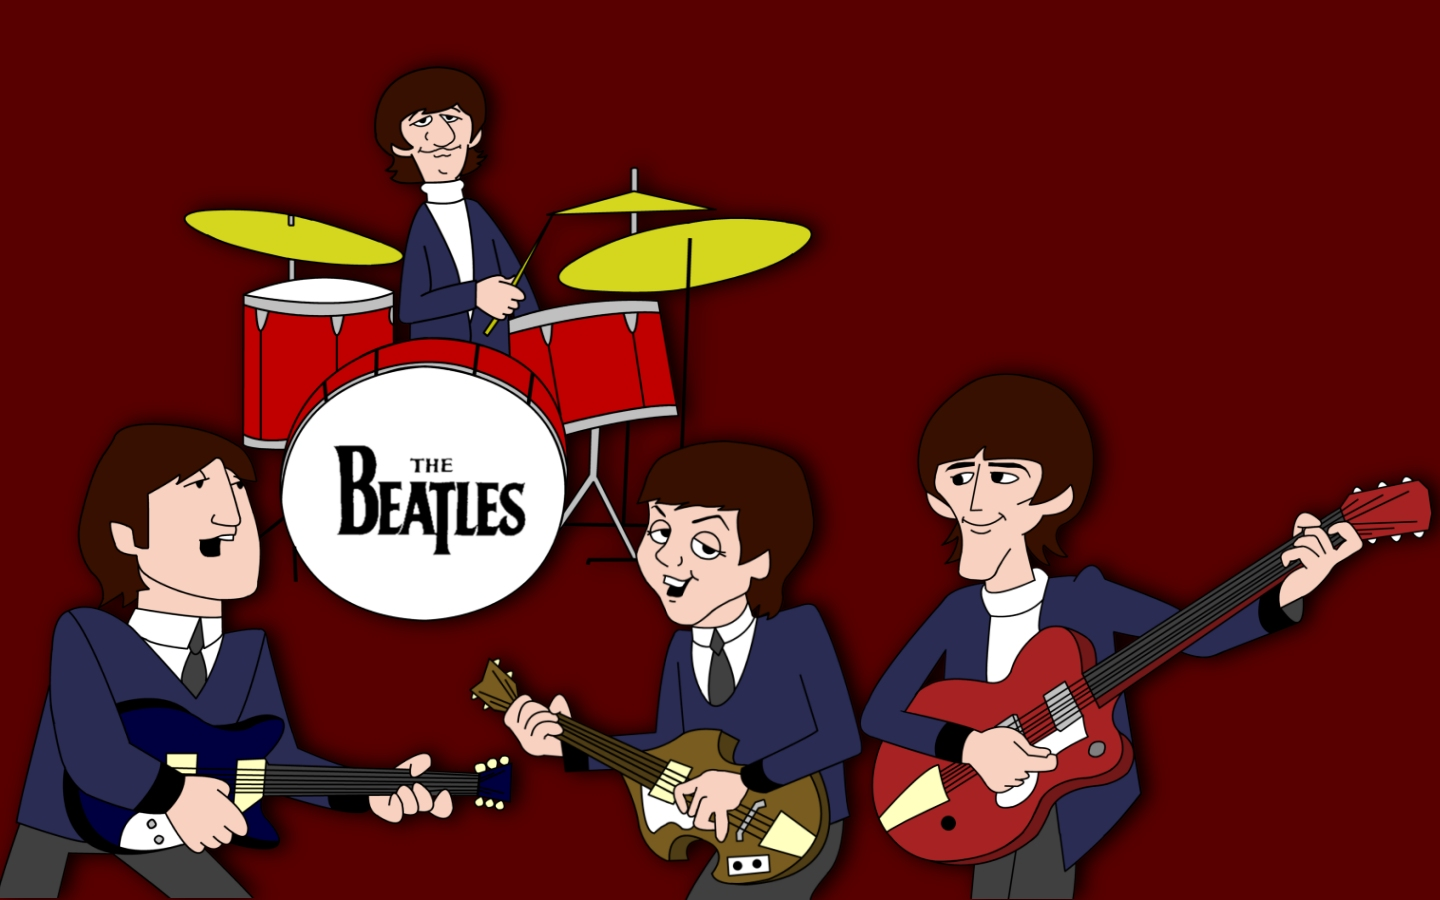 http://www.startrekanimated.com/ys_car_beatles_wall05.jpg